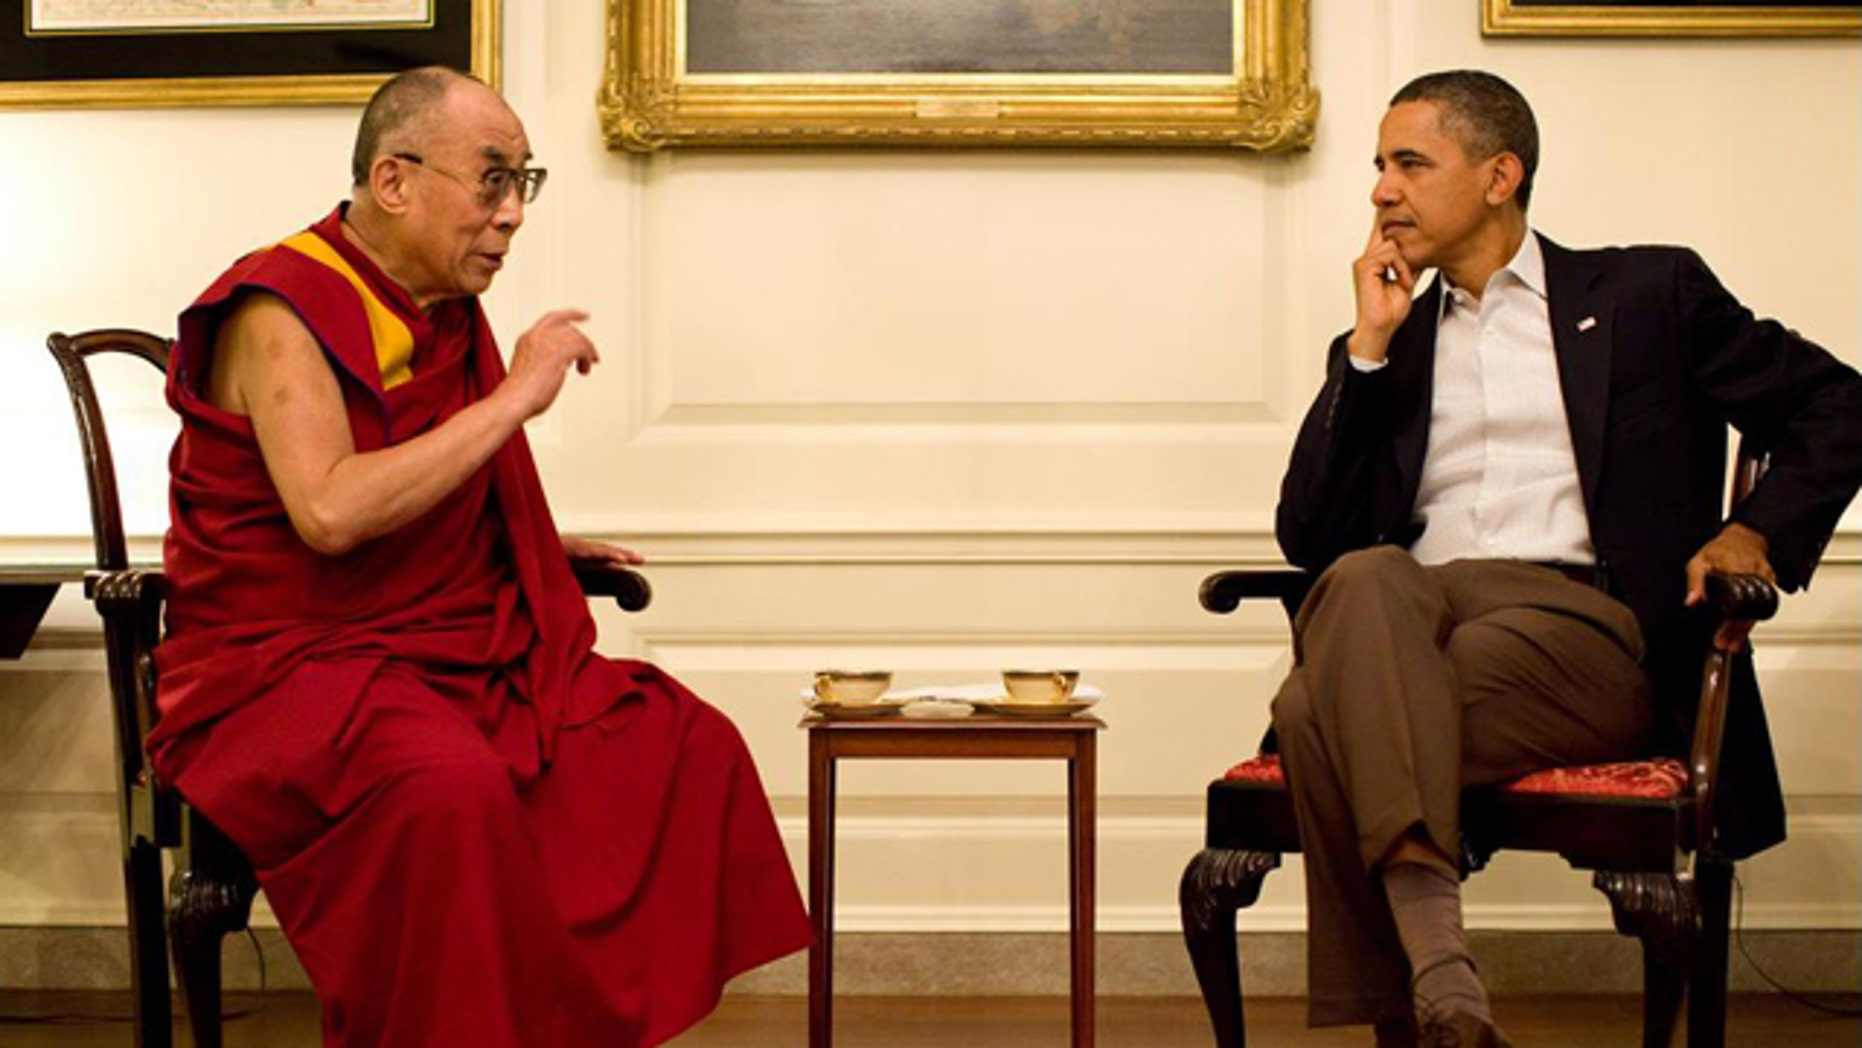 July 16: President Barack Obama meets with His Holiness the XIV Dalai Lama in the Map Room of the White House.